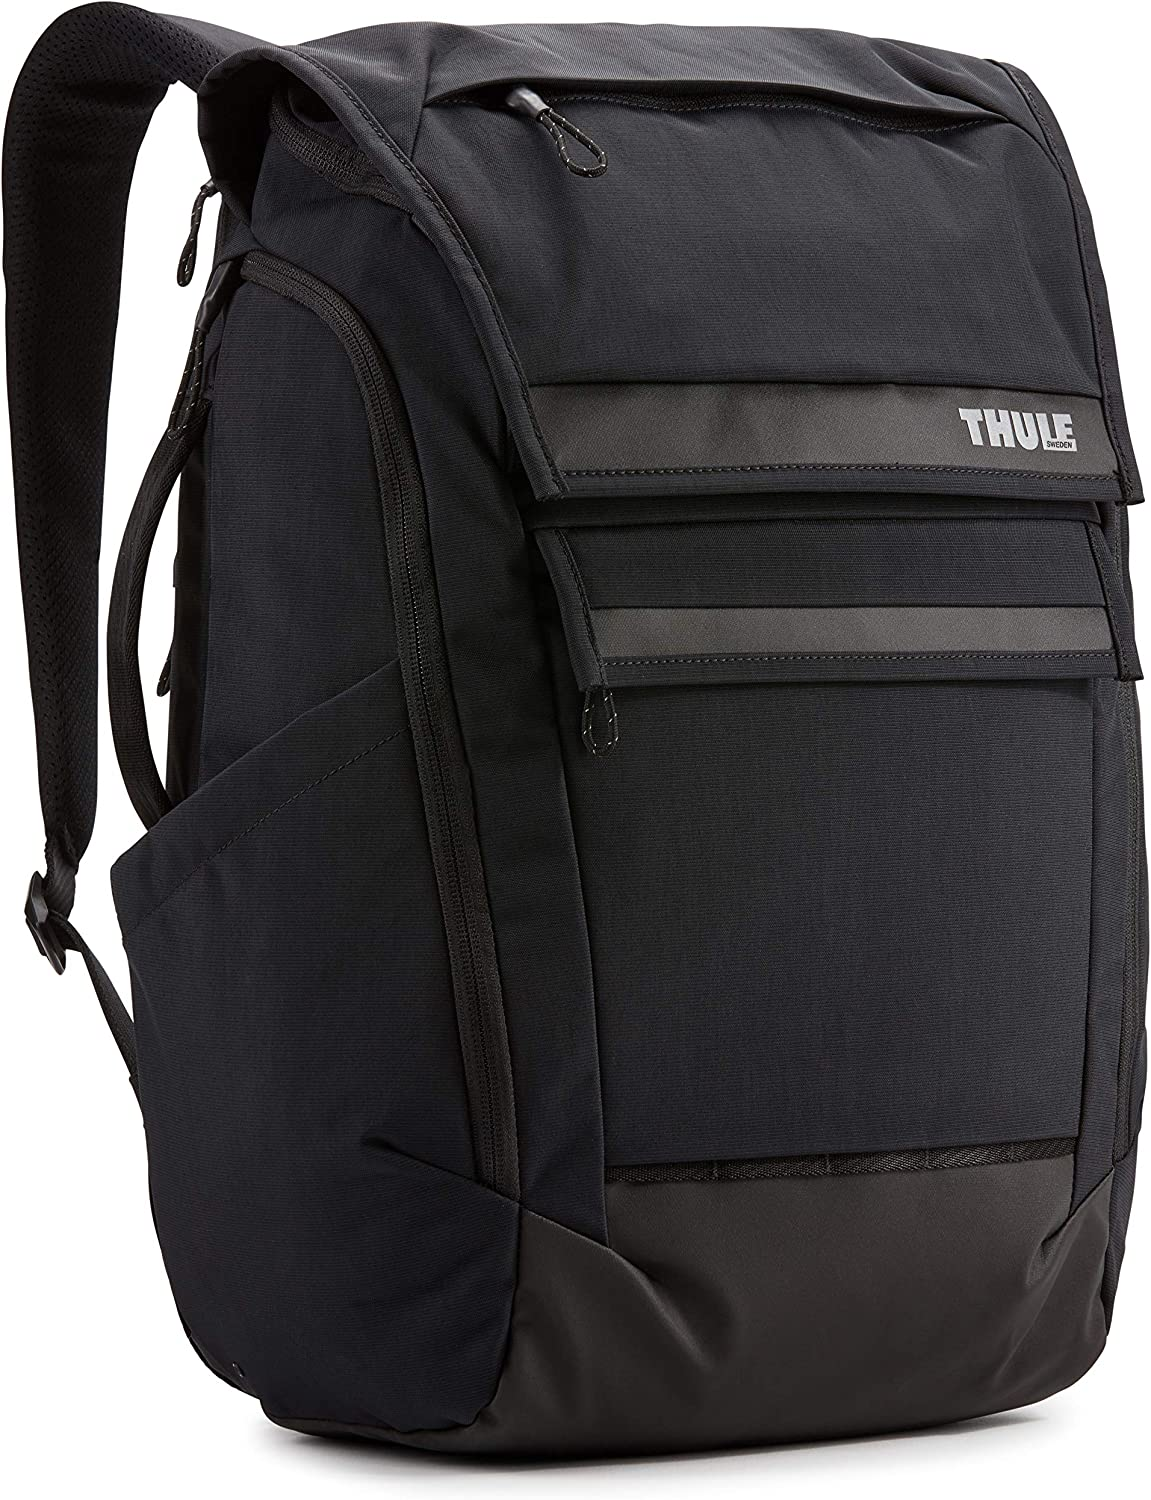 Thule Paramount Backpack